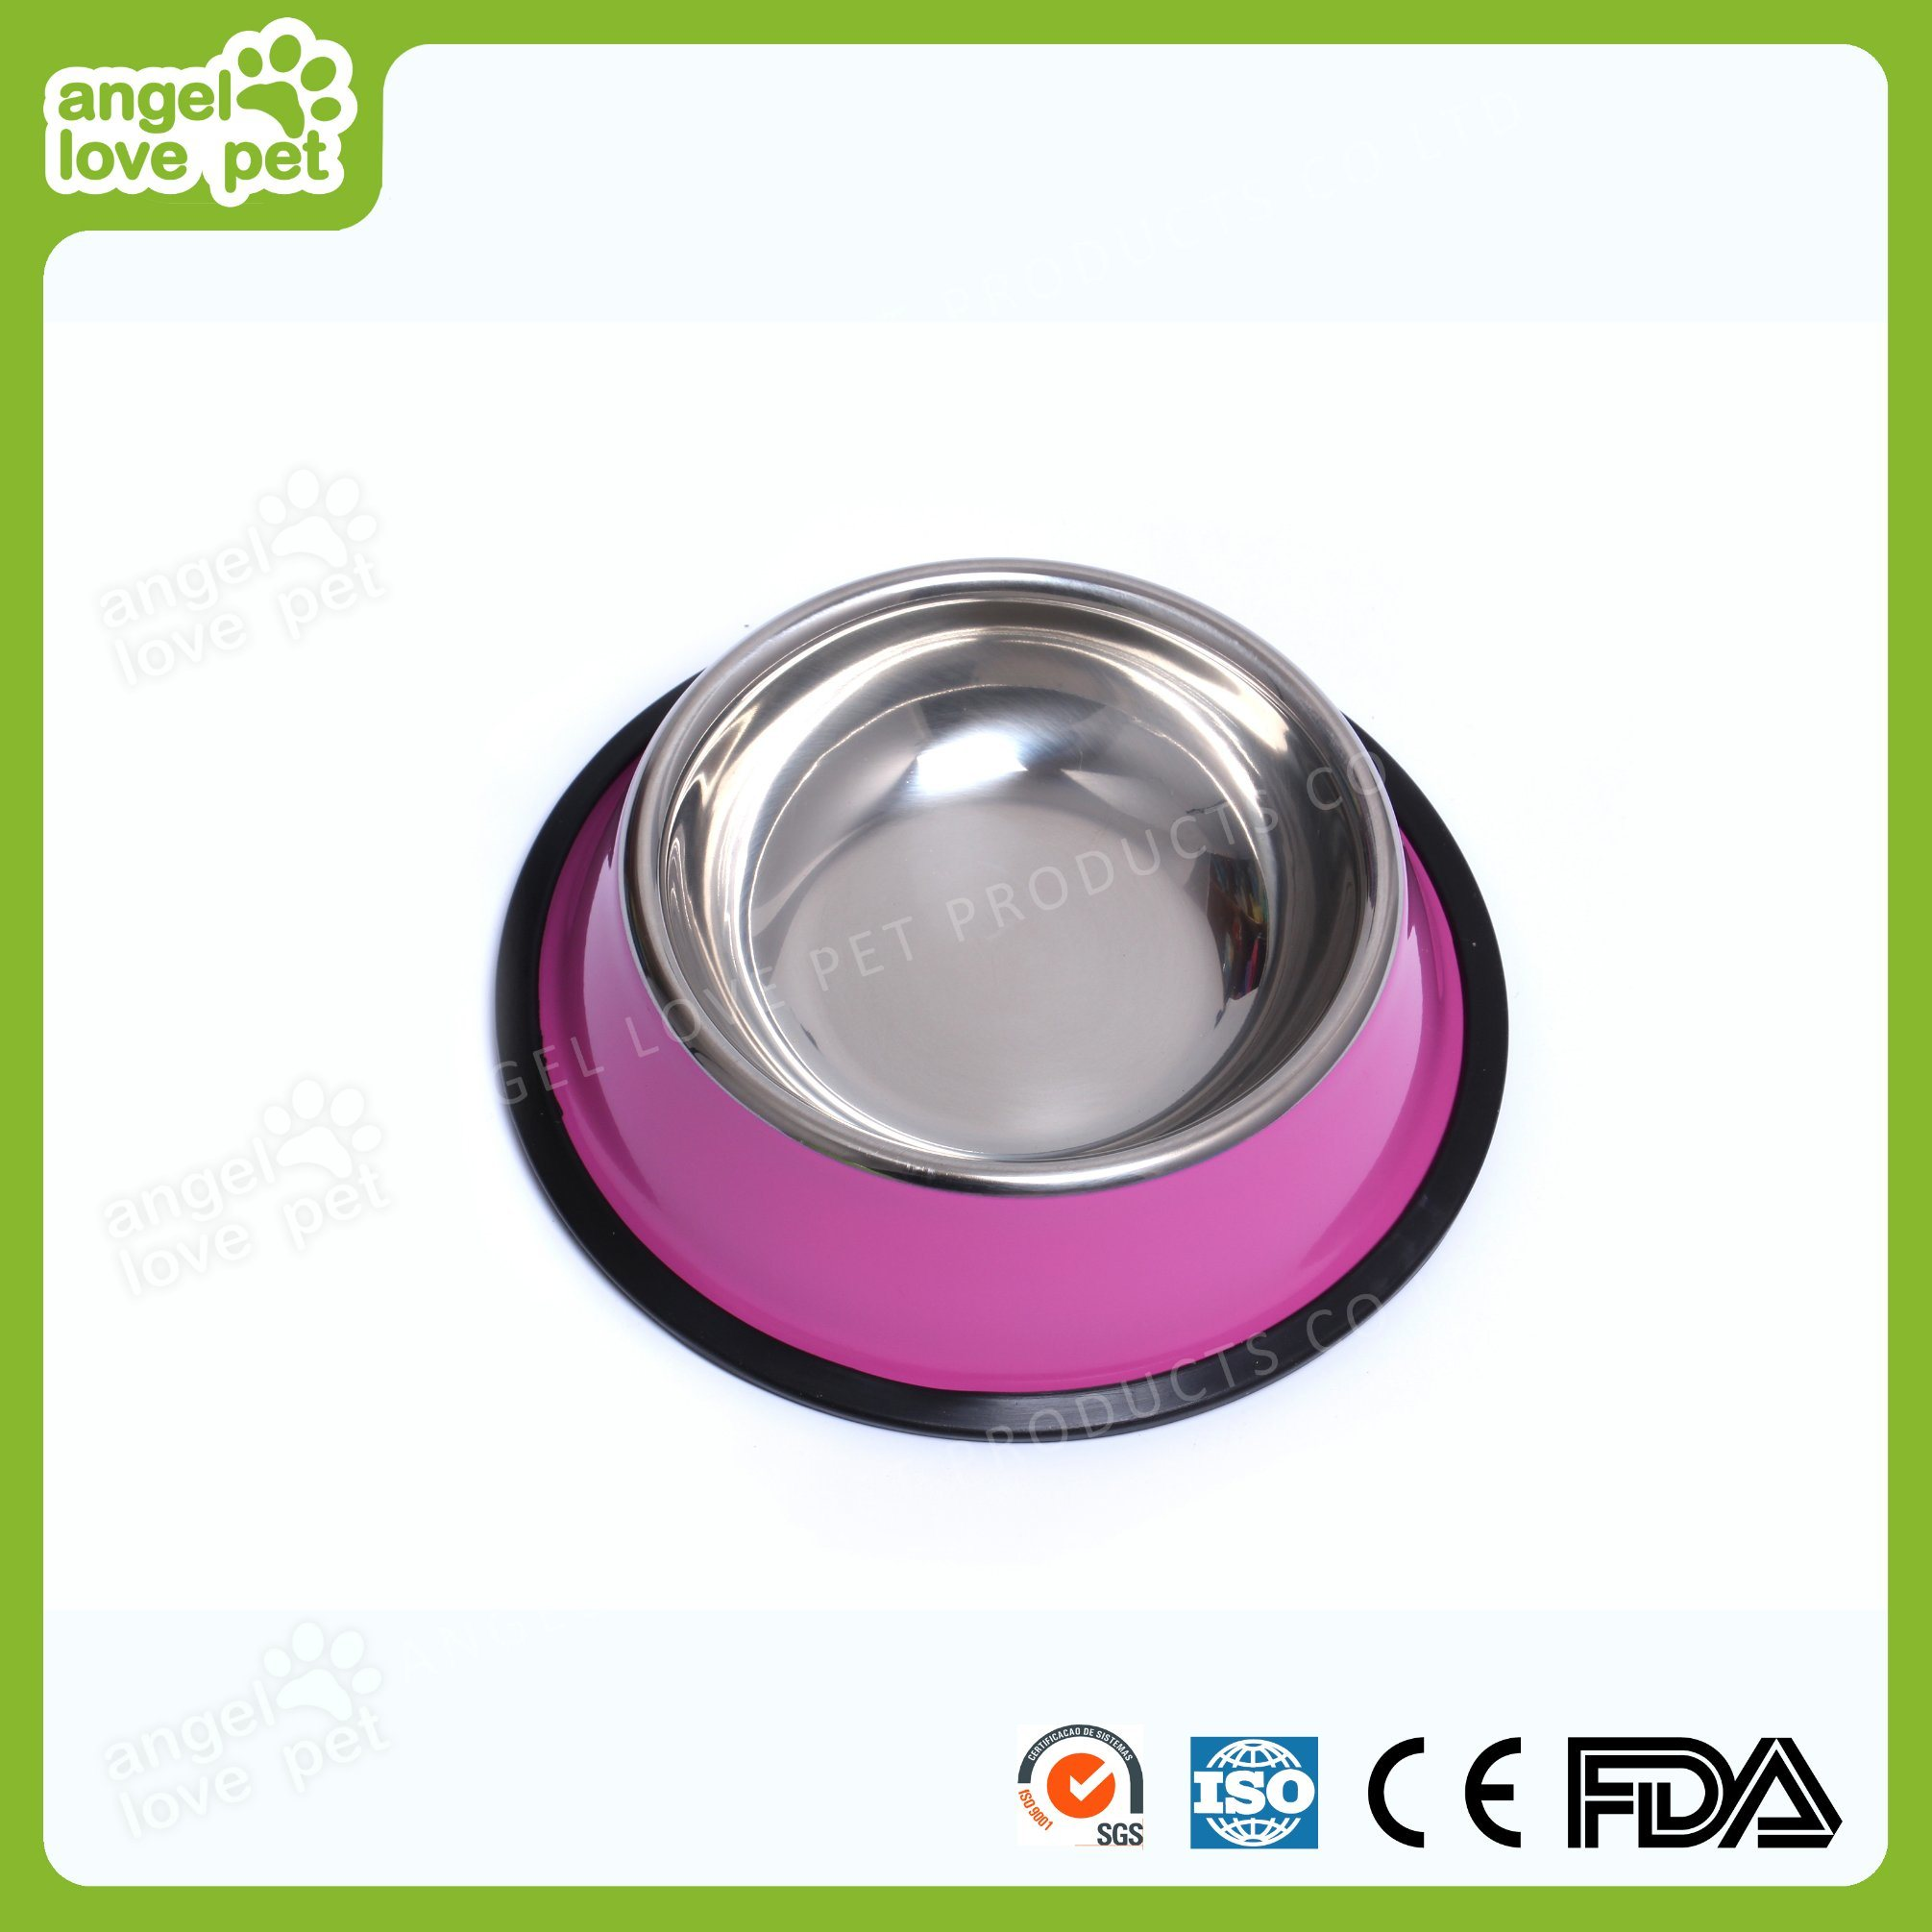 Colorful Customized Stainless Steel Pet Bowl, Dog Product